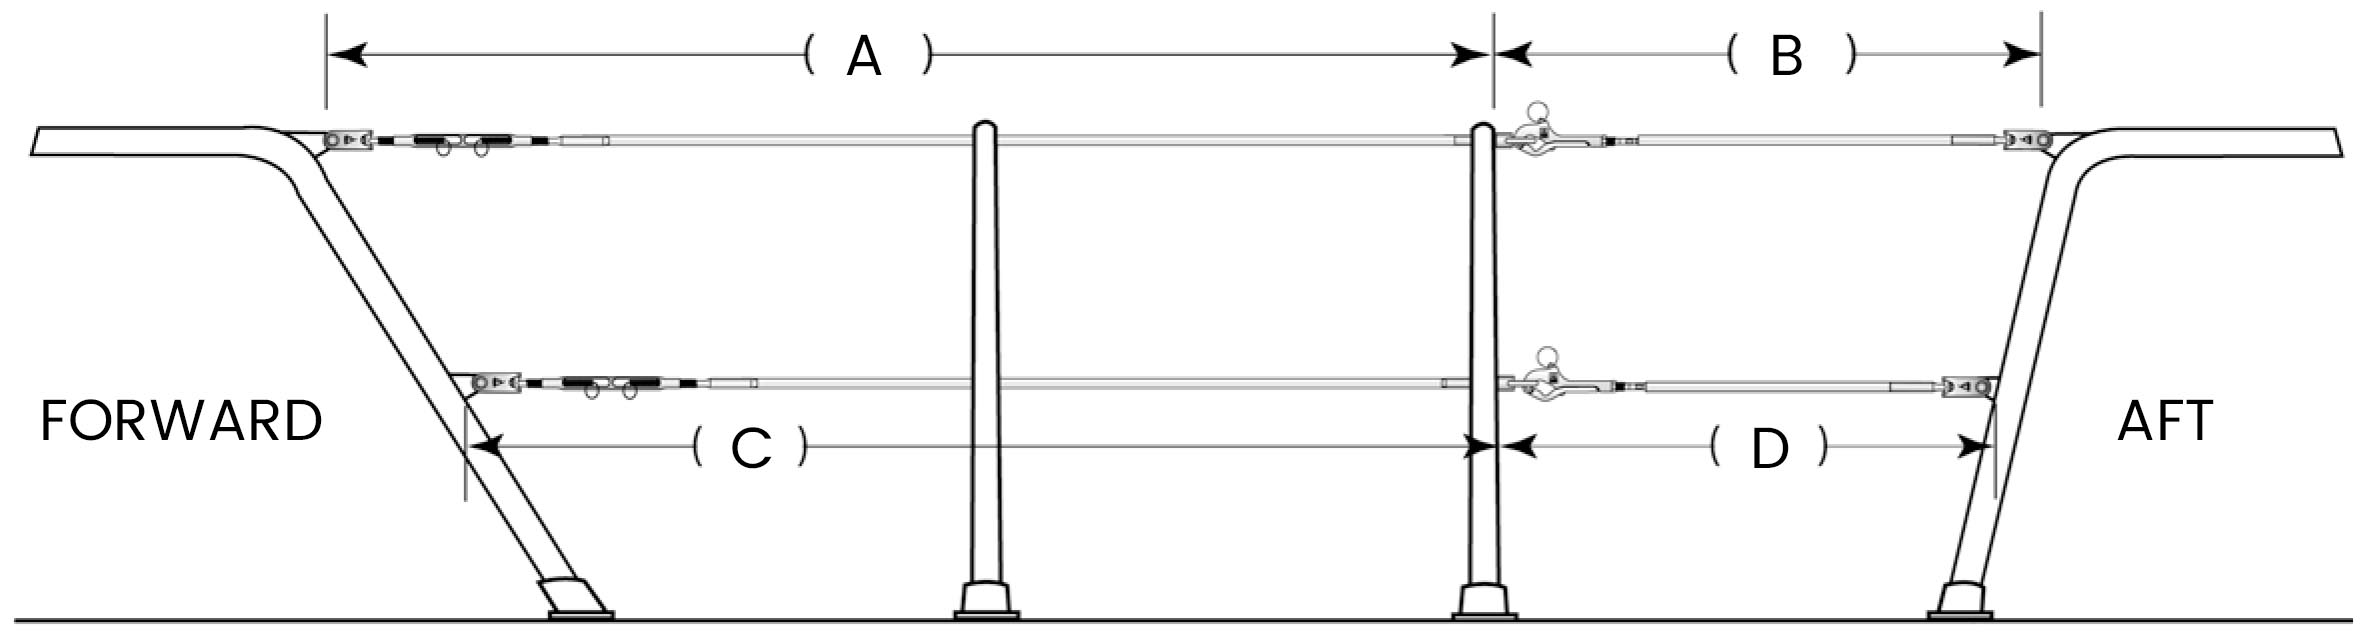 Sailboat Measurement Form - Aft Gate